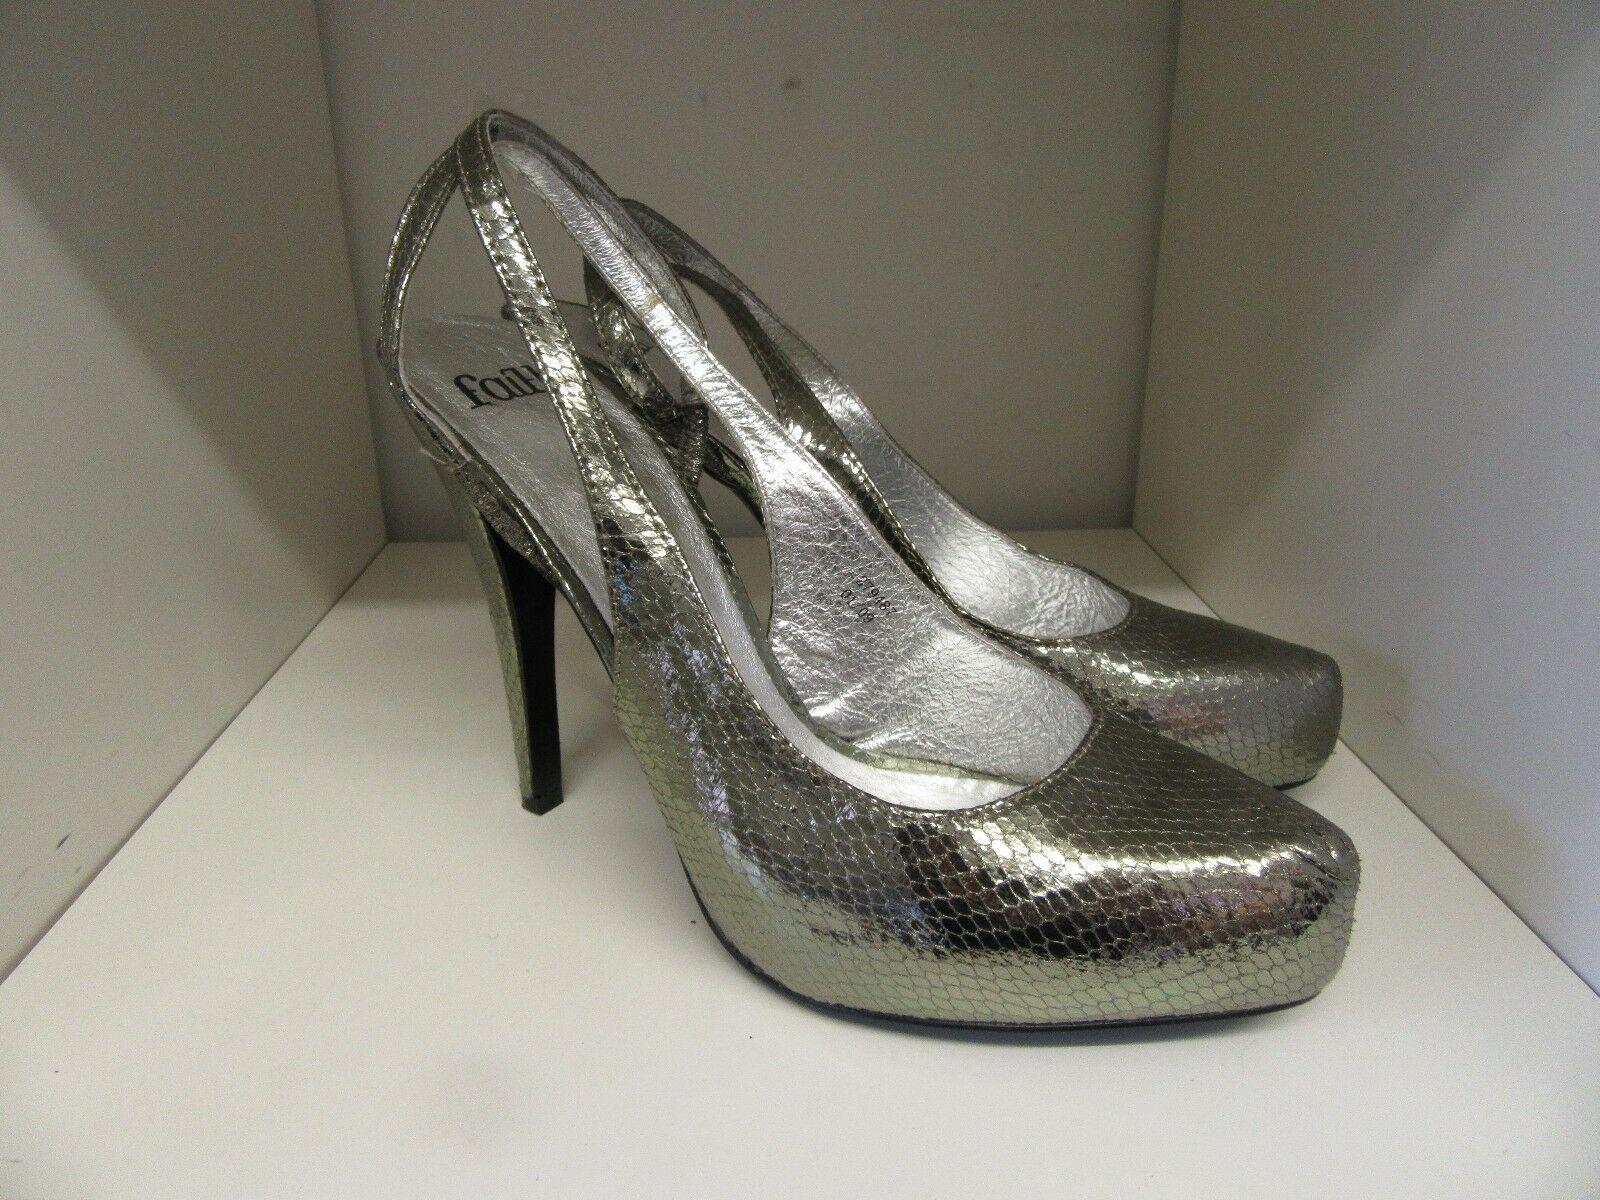 FAITH SILVER SIZE LEATHER SNAKESKIN STRAPPY SHOES SIZE SILVER 7 BRAND NEW a8caa1